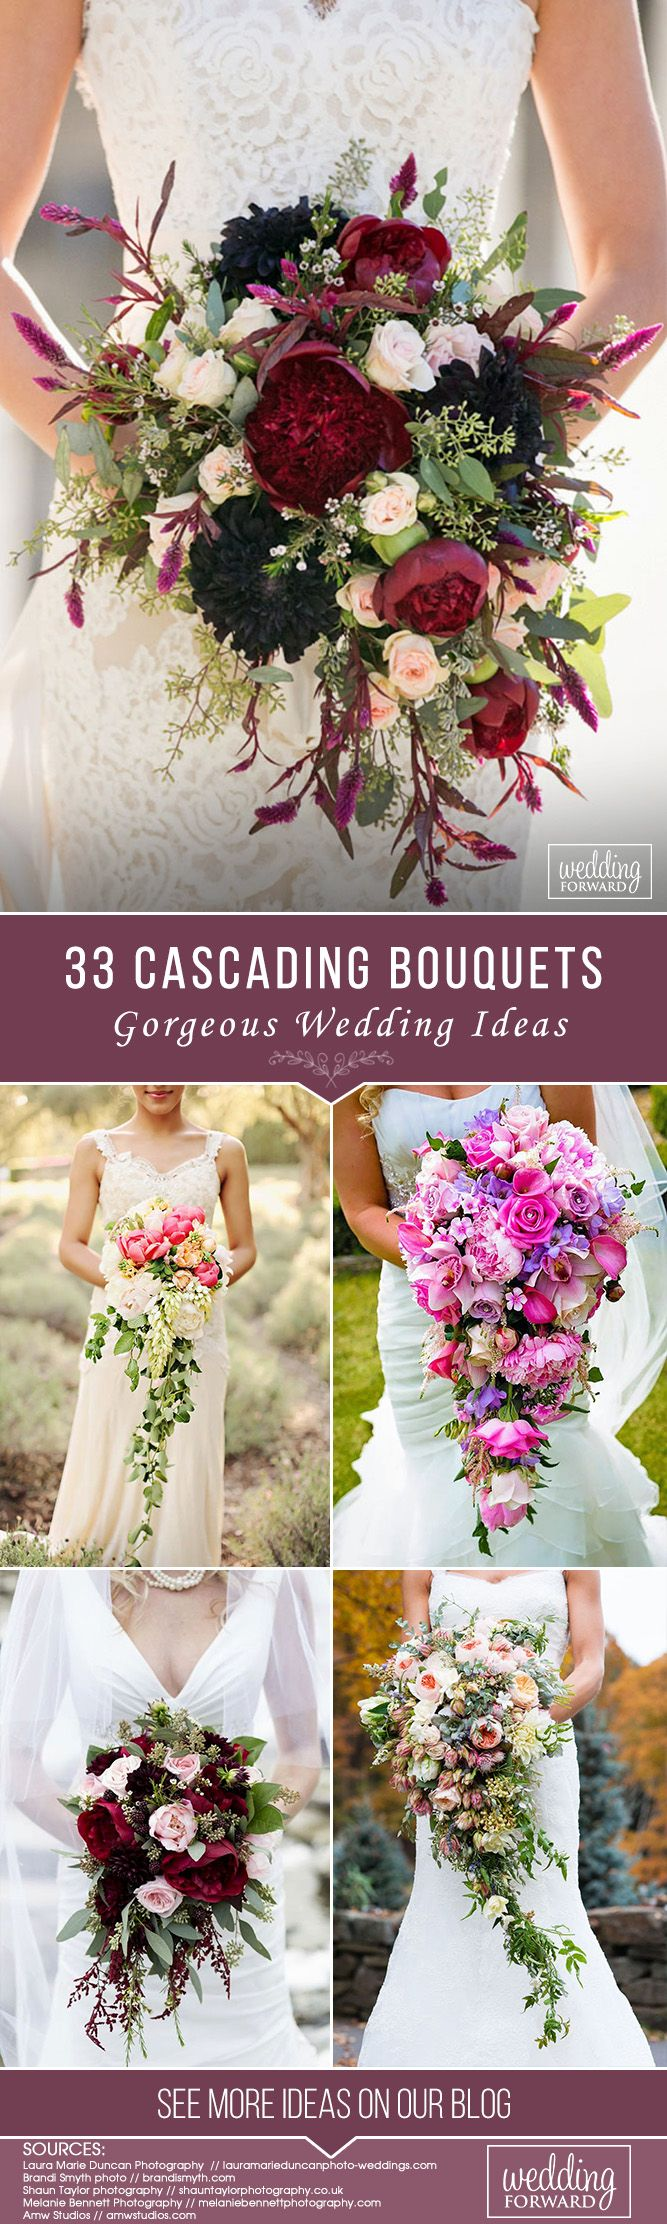 33 Gorgeous Cascading Wedding Bouquets ❤ See more: http://www.weddingforward.com/cascading-wedding-bouquets/ #weddings #bouquets #weddingbouquets #cascadingweddingbouquets